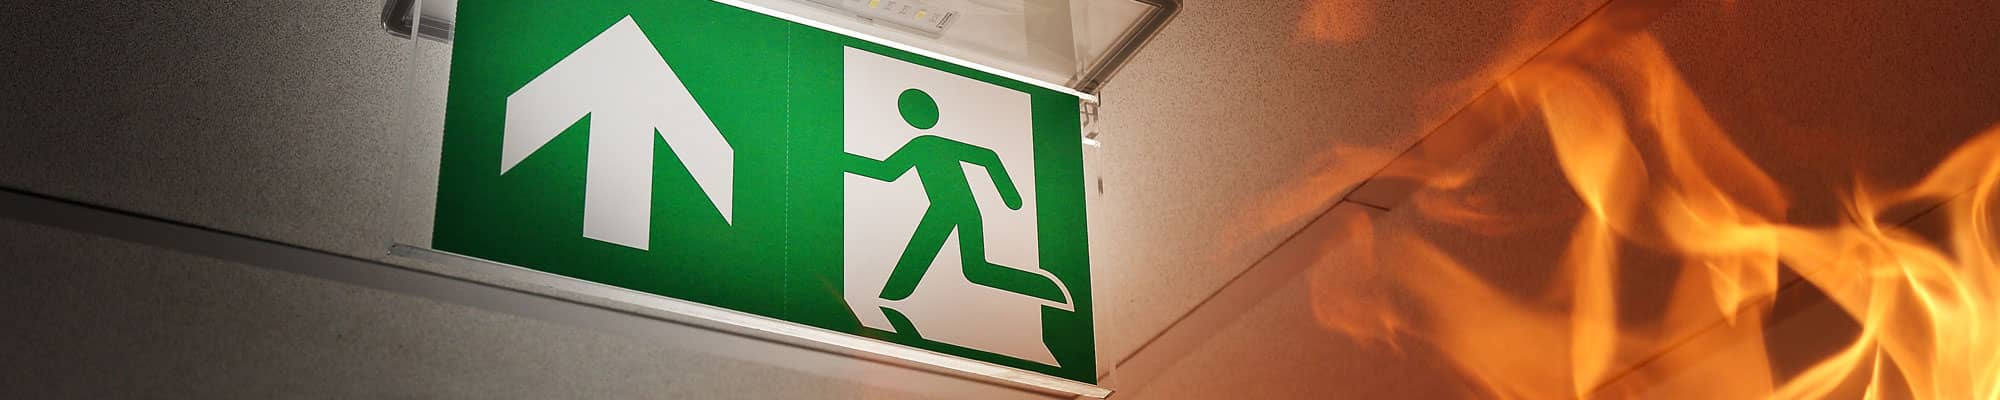 Fire exit signage at Chester business park based company